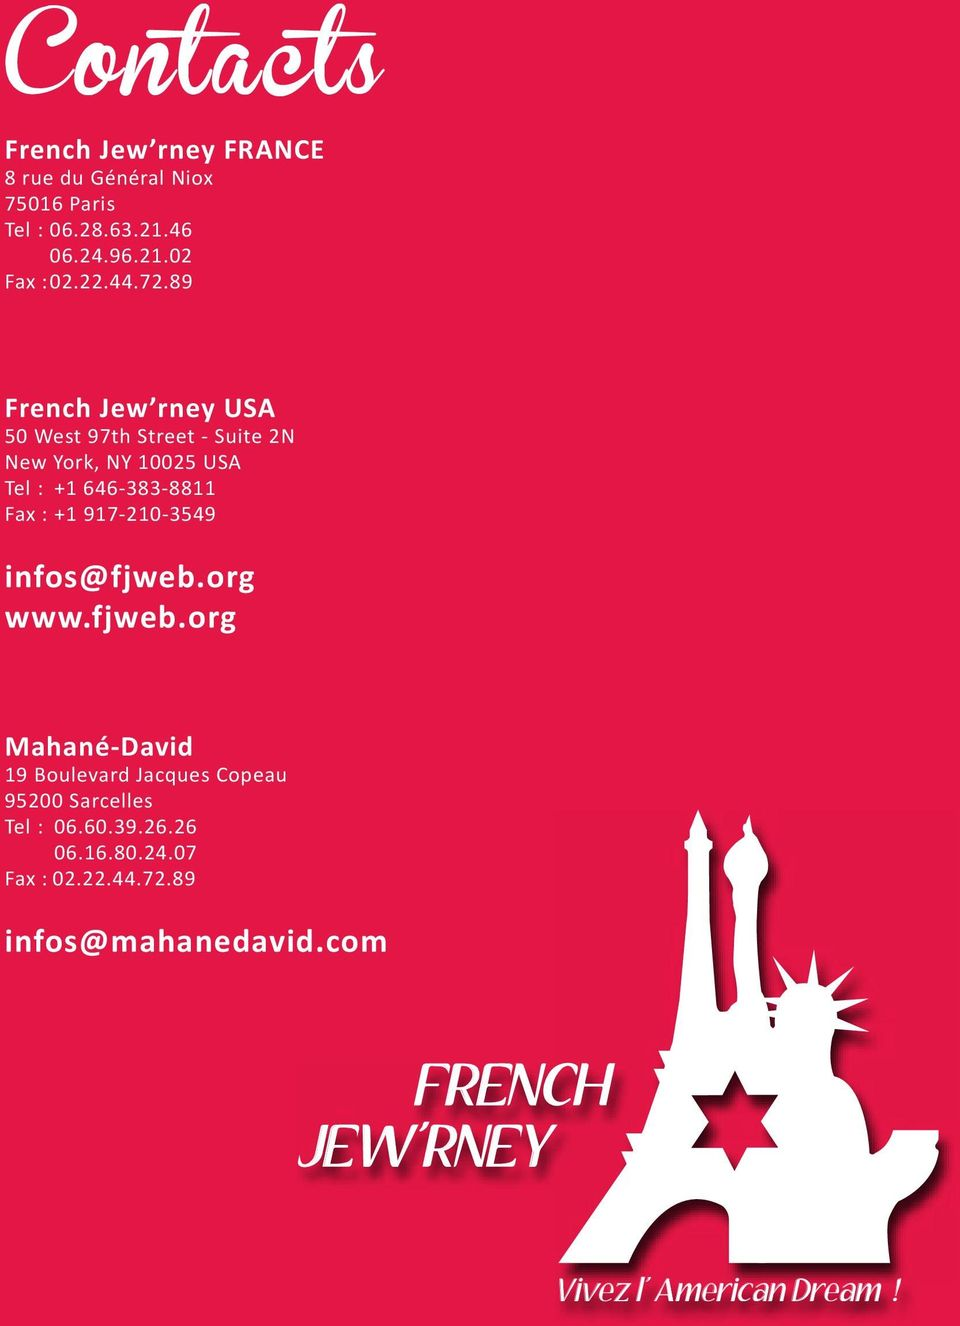 89 French Jew rney USA 50 West 97th Street - Suite 2N New York, NY 10025 USA Tel : +1 646-383-8811 Fax : +1